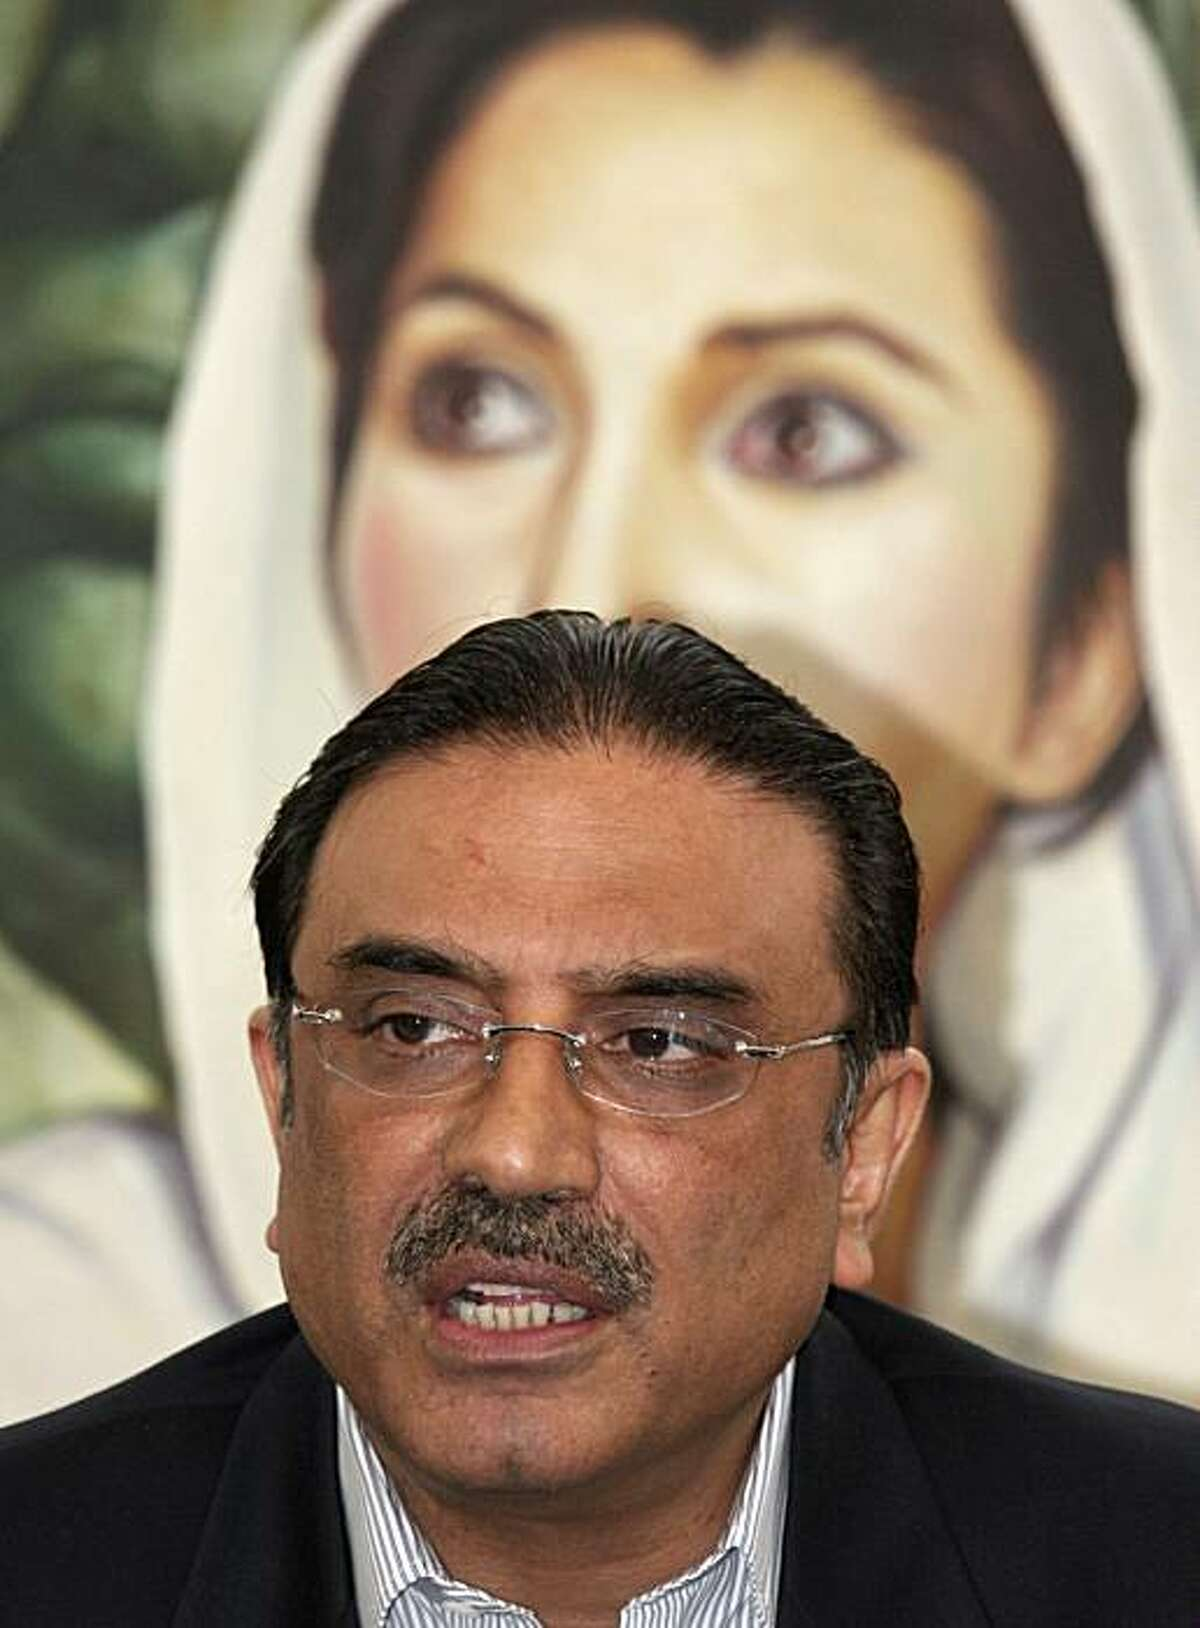 Asif Ali Zardari, husband of Pakistan's slain opposition leader Benazir Bhutto, addresses the media at a news conference in Karachi, Pakistan, Tuesday, Jan. 15, 2008. Zardari told reporters that he had given evidence to British police officers who are assisting Pakistani authorities in the investigation of Bhutto's assassination. (AP Photo/Shakil Adil)